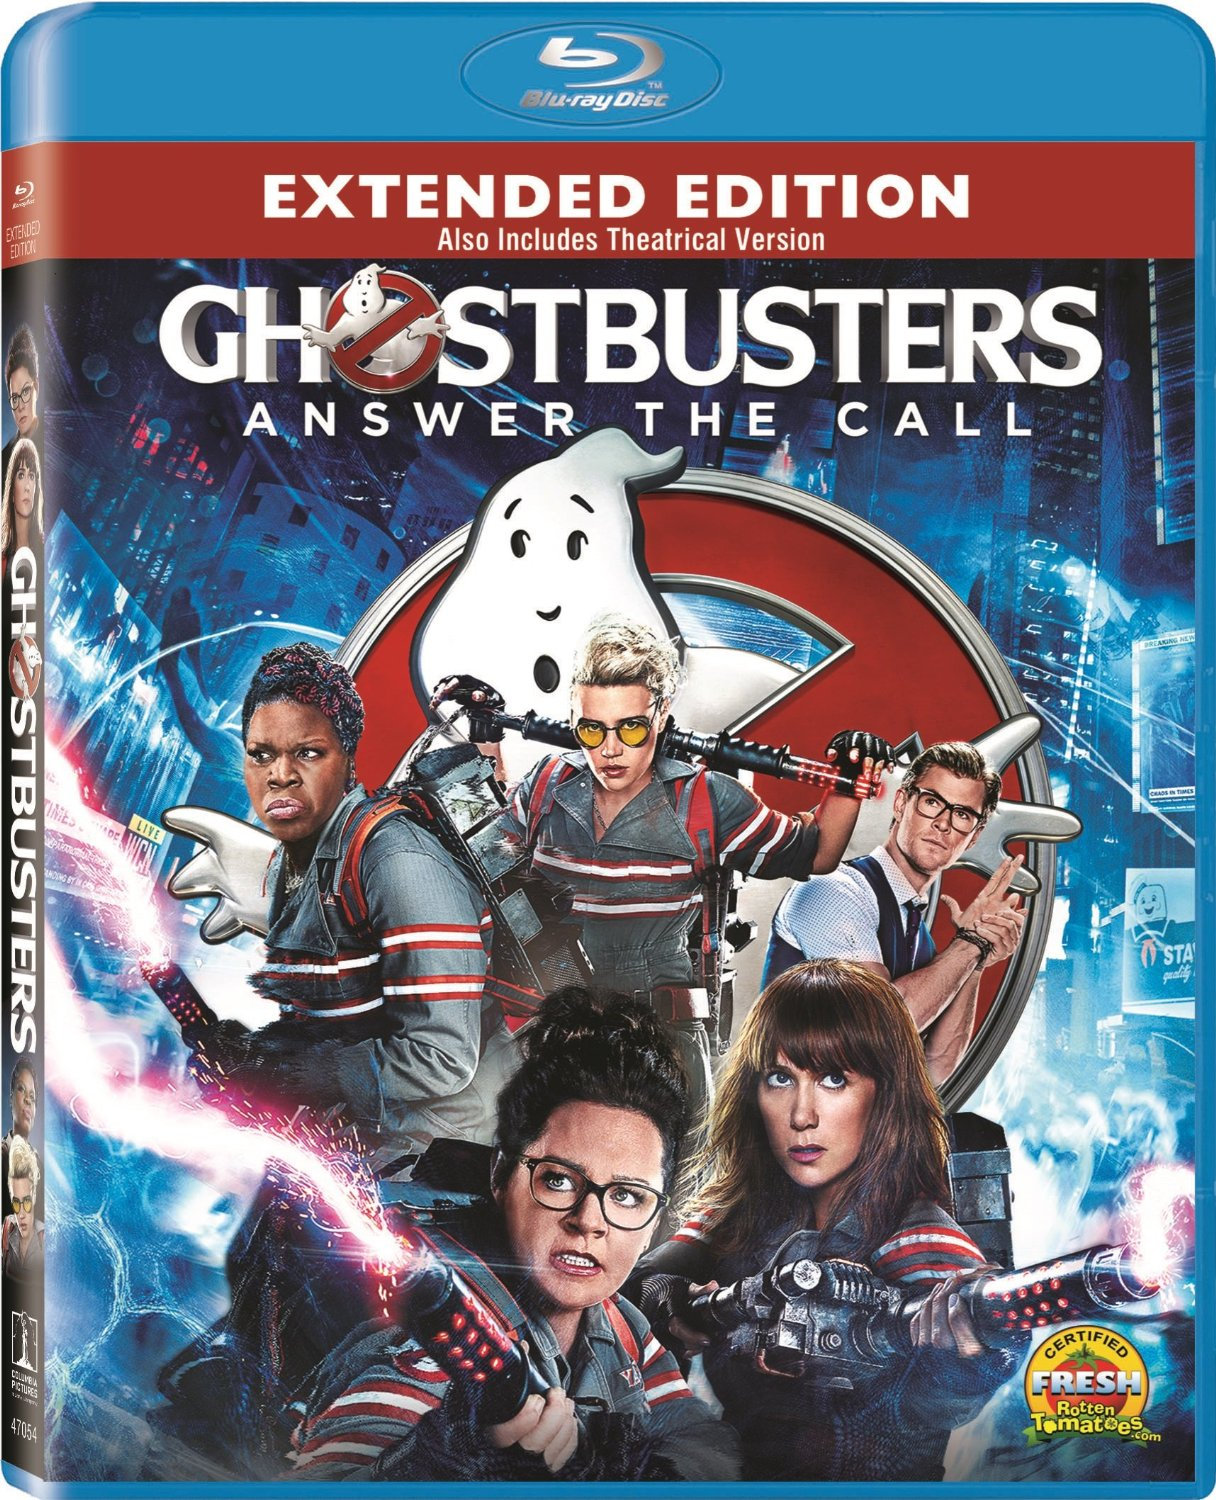 Ghostbuster Blu-ray cover